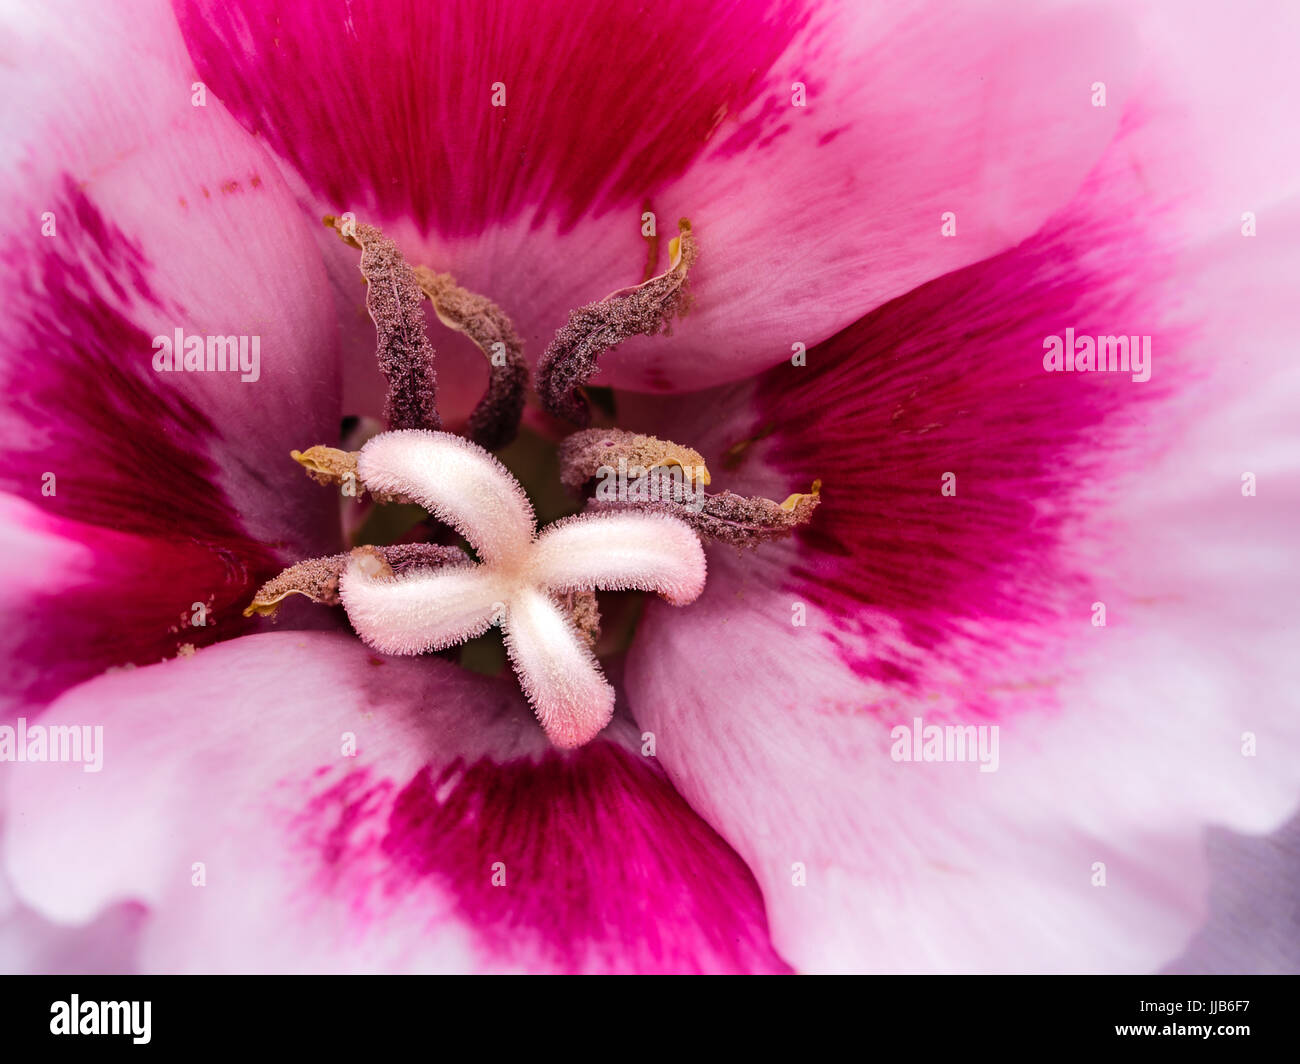 Macro photograph of a lily flower with pink and white pedals highly macro photograph of a lily flower with pink and white pedals highly detailed white pistil and tan stamen izmirmasajfo